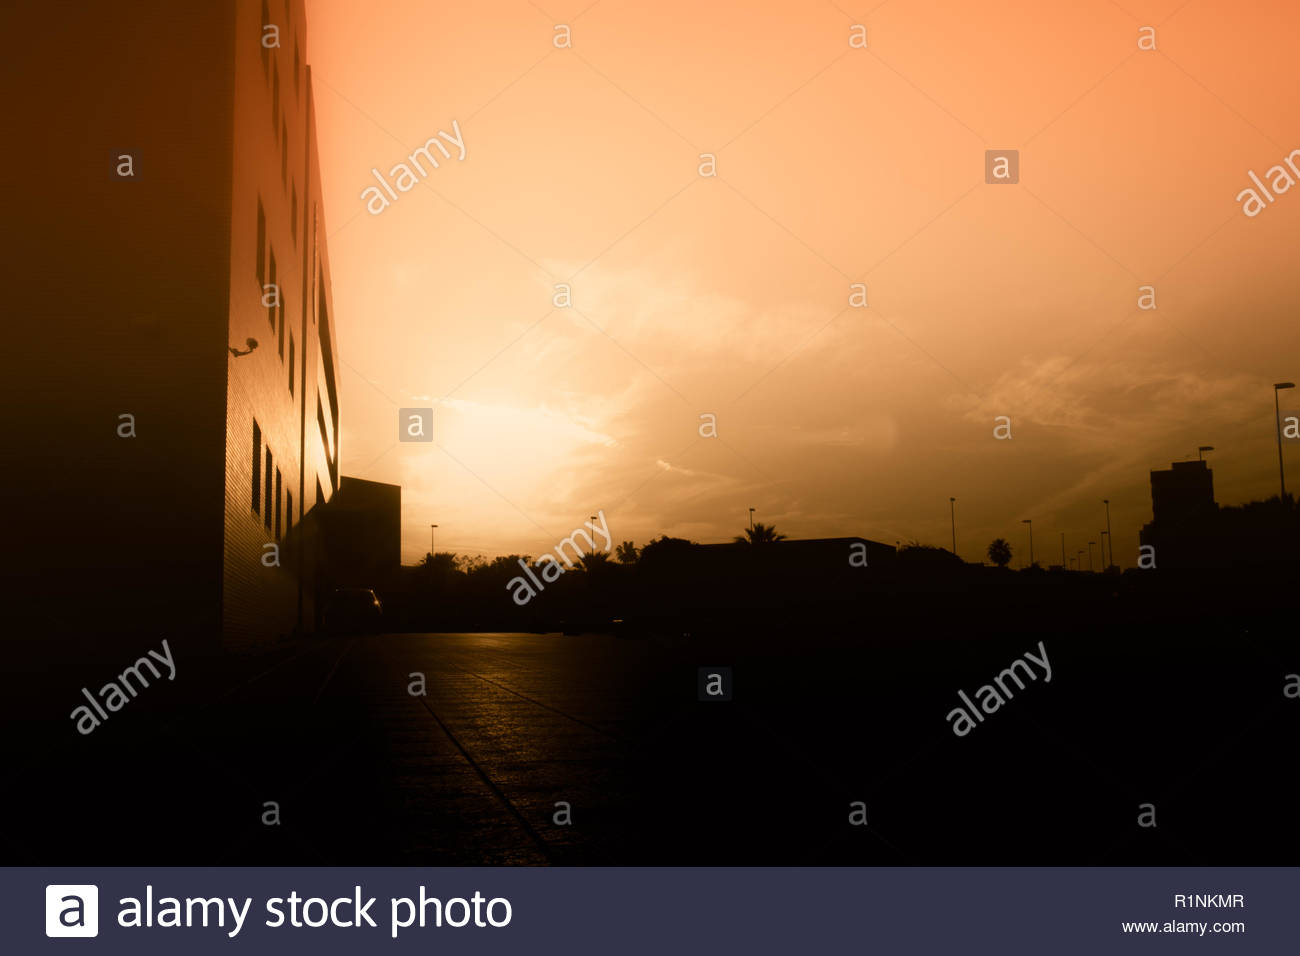 apocalyptic sunset in the city the end of time - Stock Image